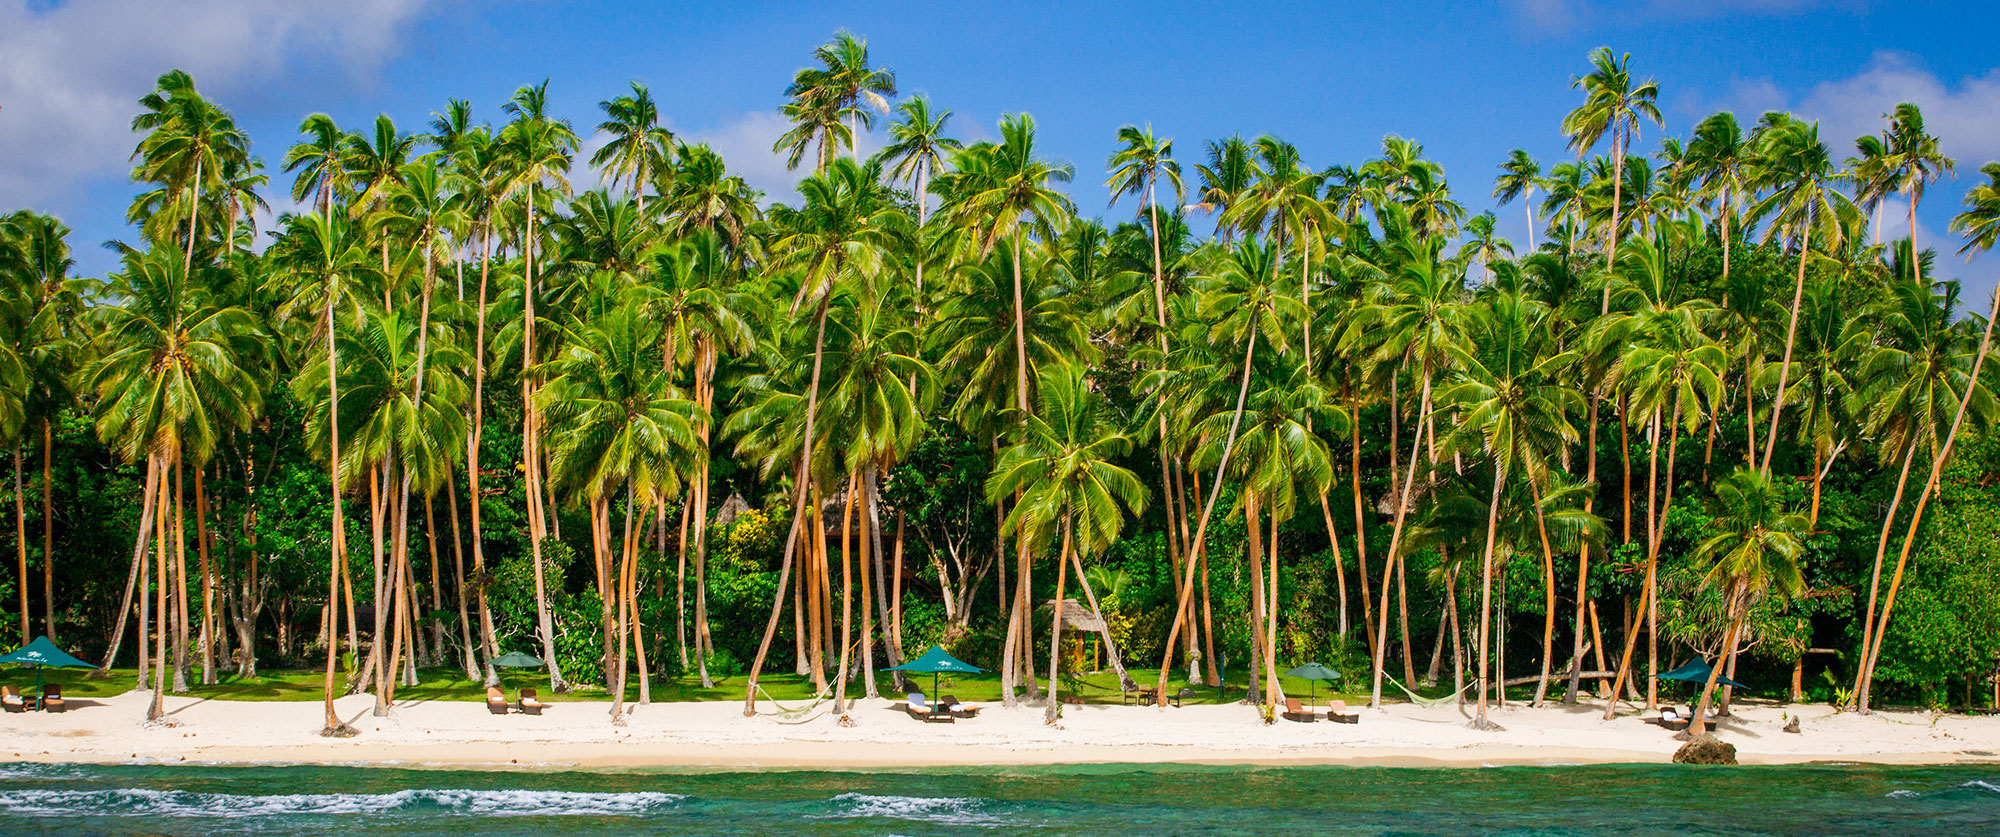 Fiji Vacation Package: Ultimate Adventure Vacation